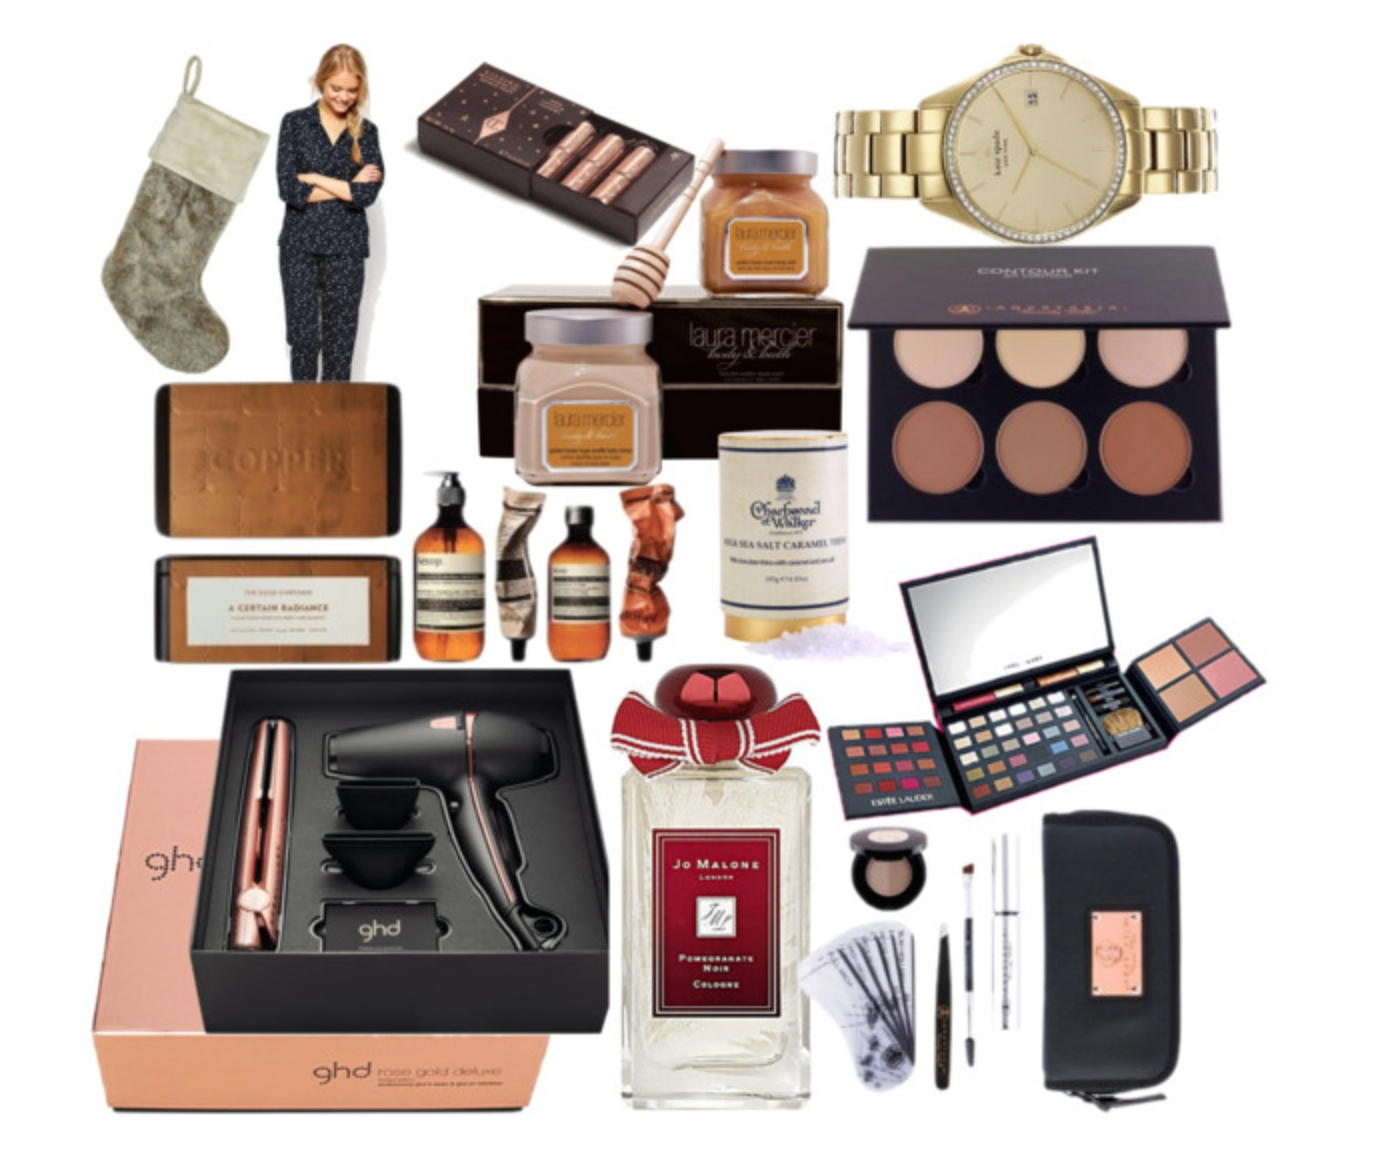 She's So Lucy // Luxury Christmas Gift Guide For Her